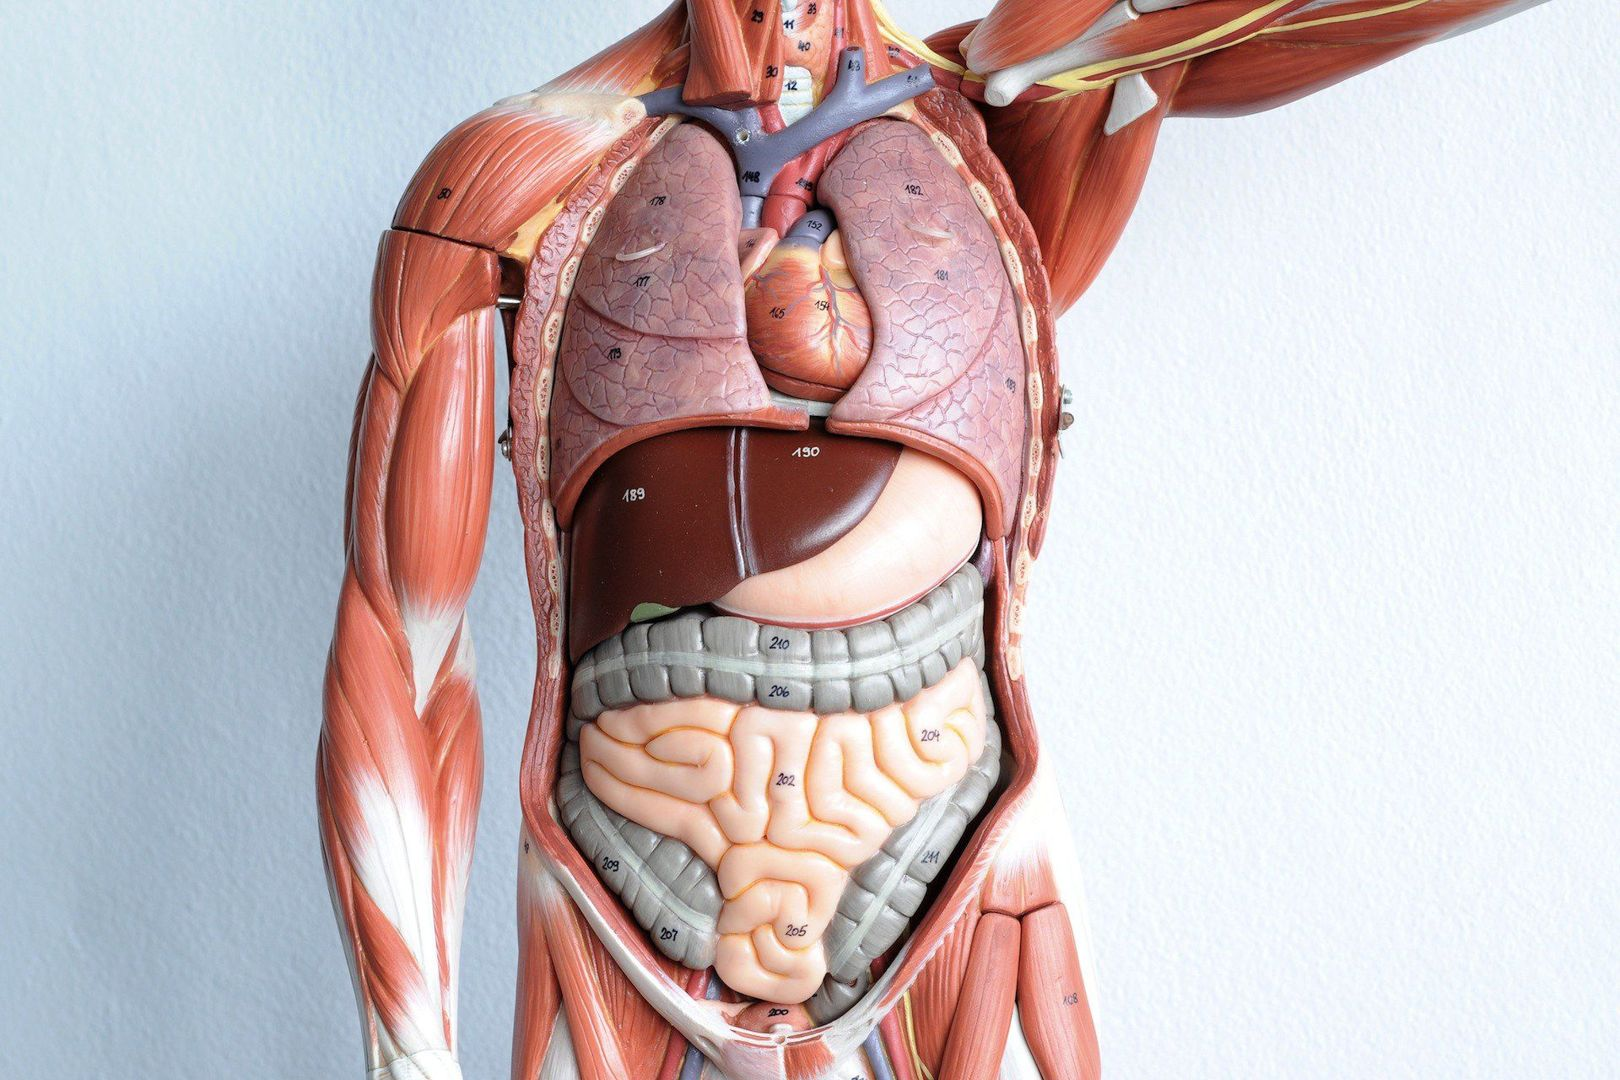 Materialise Receives Fda Clearance For 3d Printed Anatomical Models